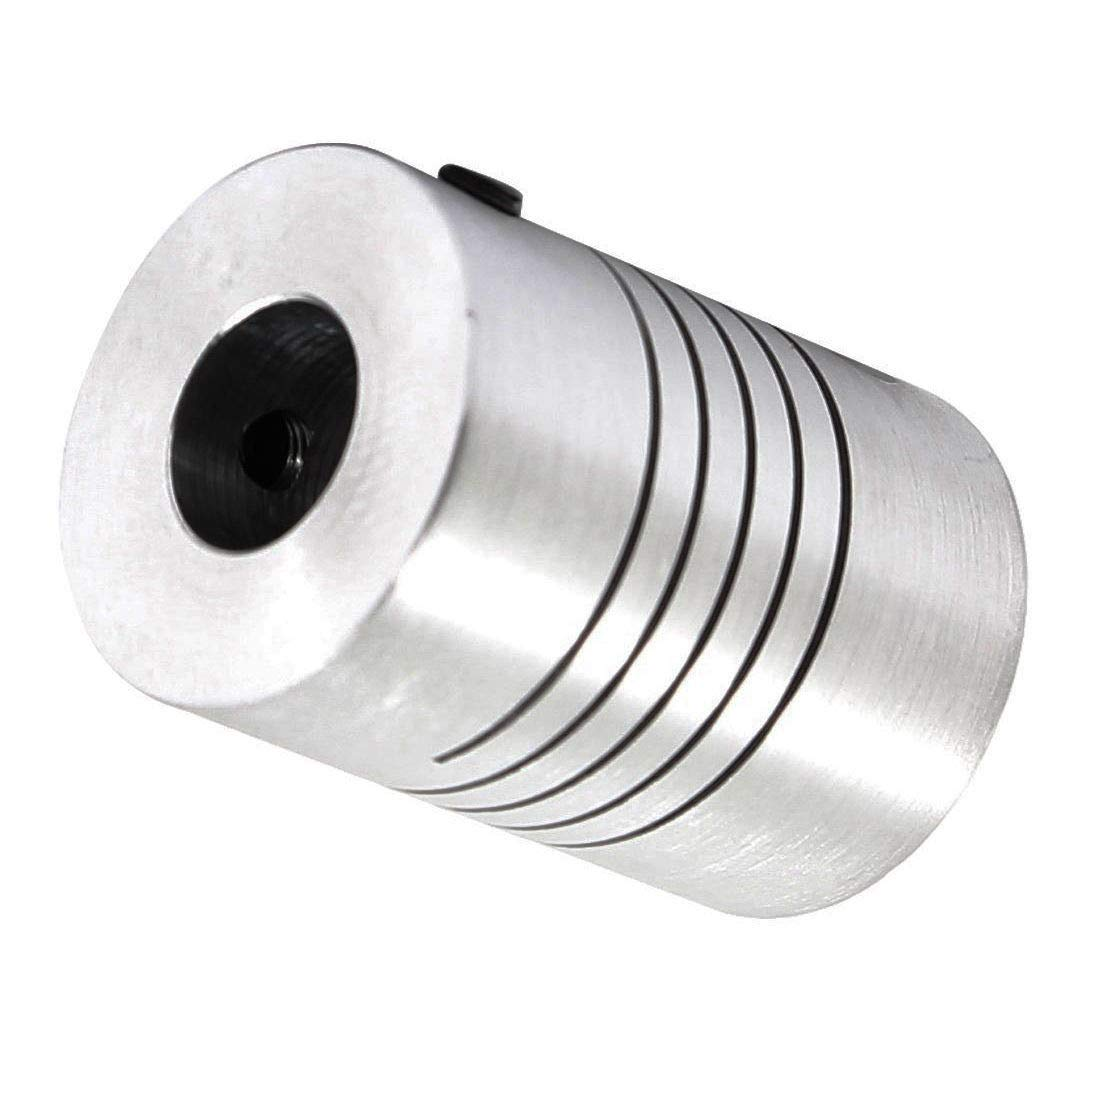 4mmx8mm CNC Motor Helical Shaft Coupler Beam Coupling Connect